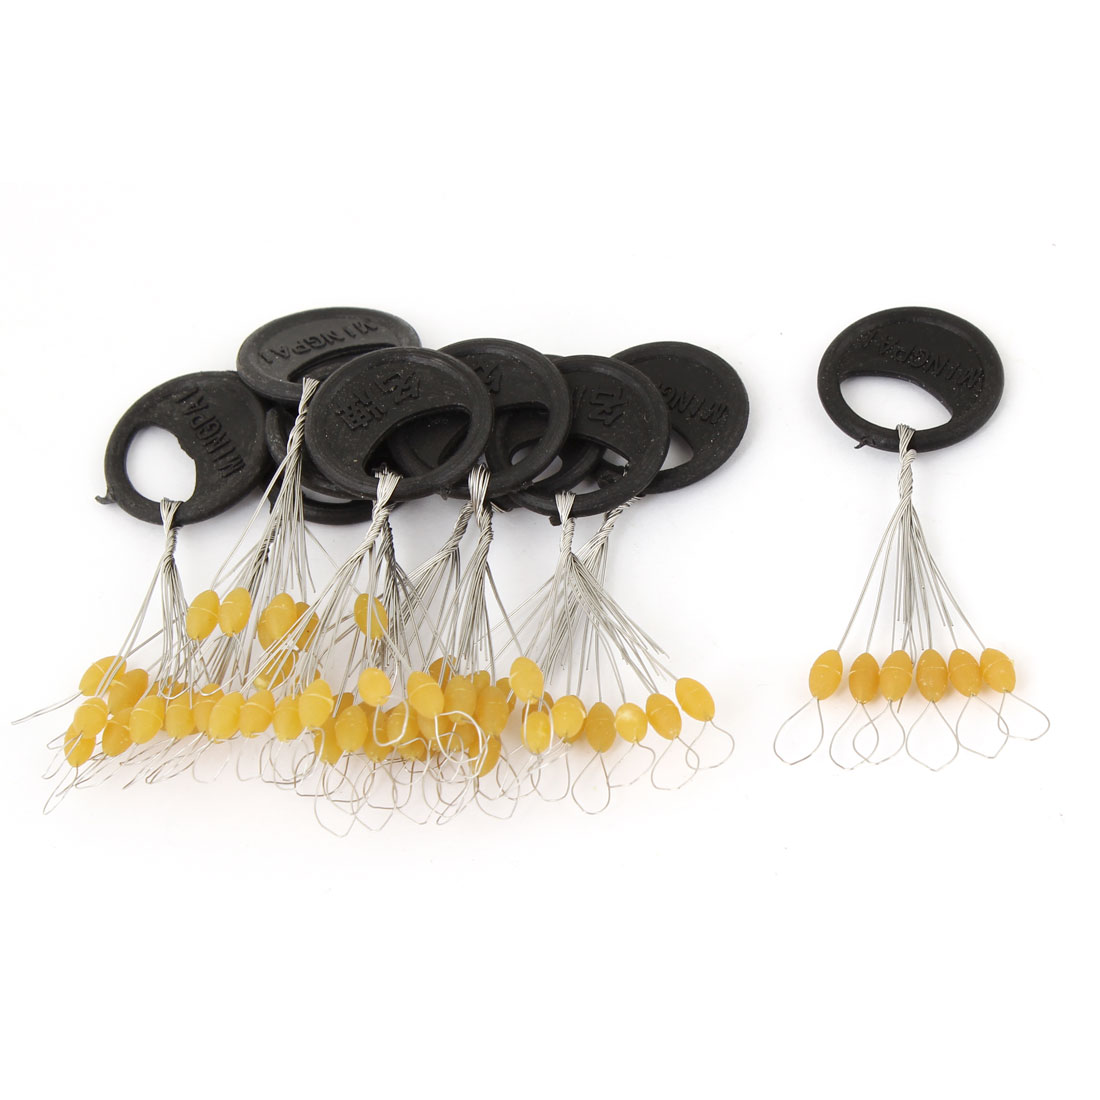 10 Pcs Size M 6 in 1 Round Shape Black Plastic Stopper Bead Fishing Bobber